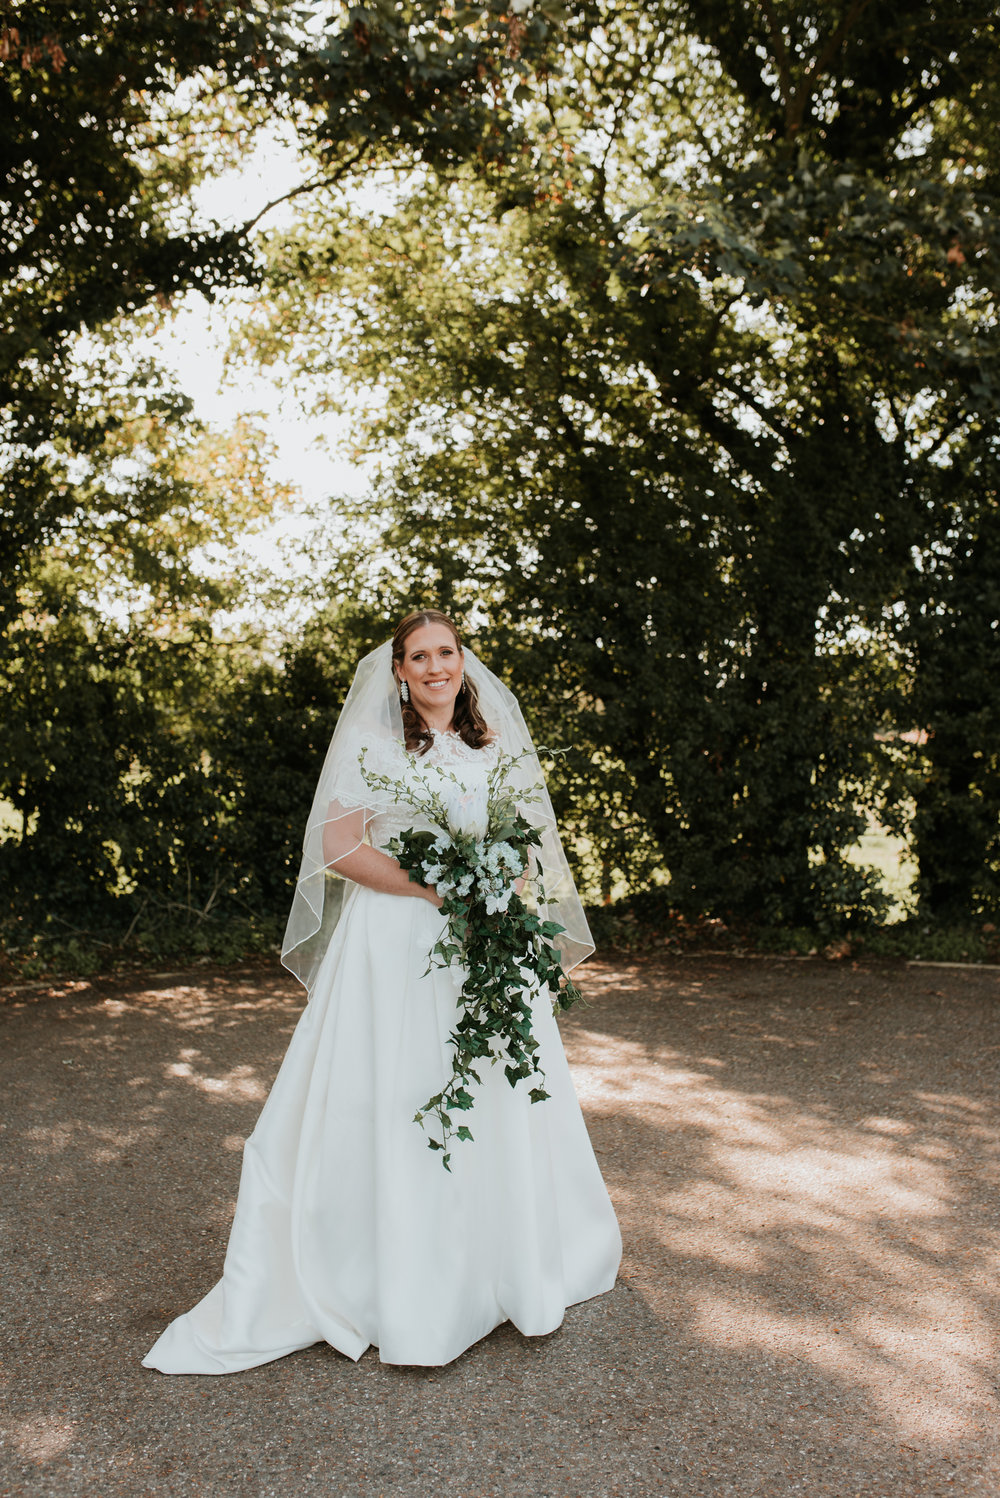 Bride with large spray bouquet